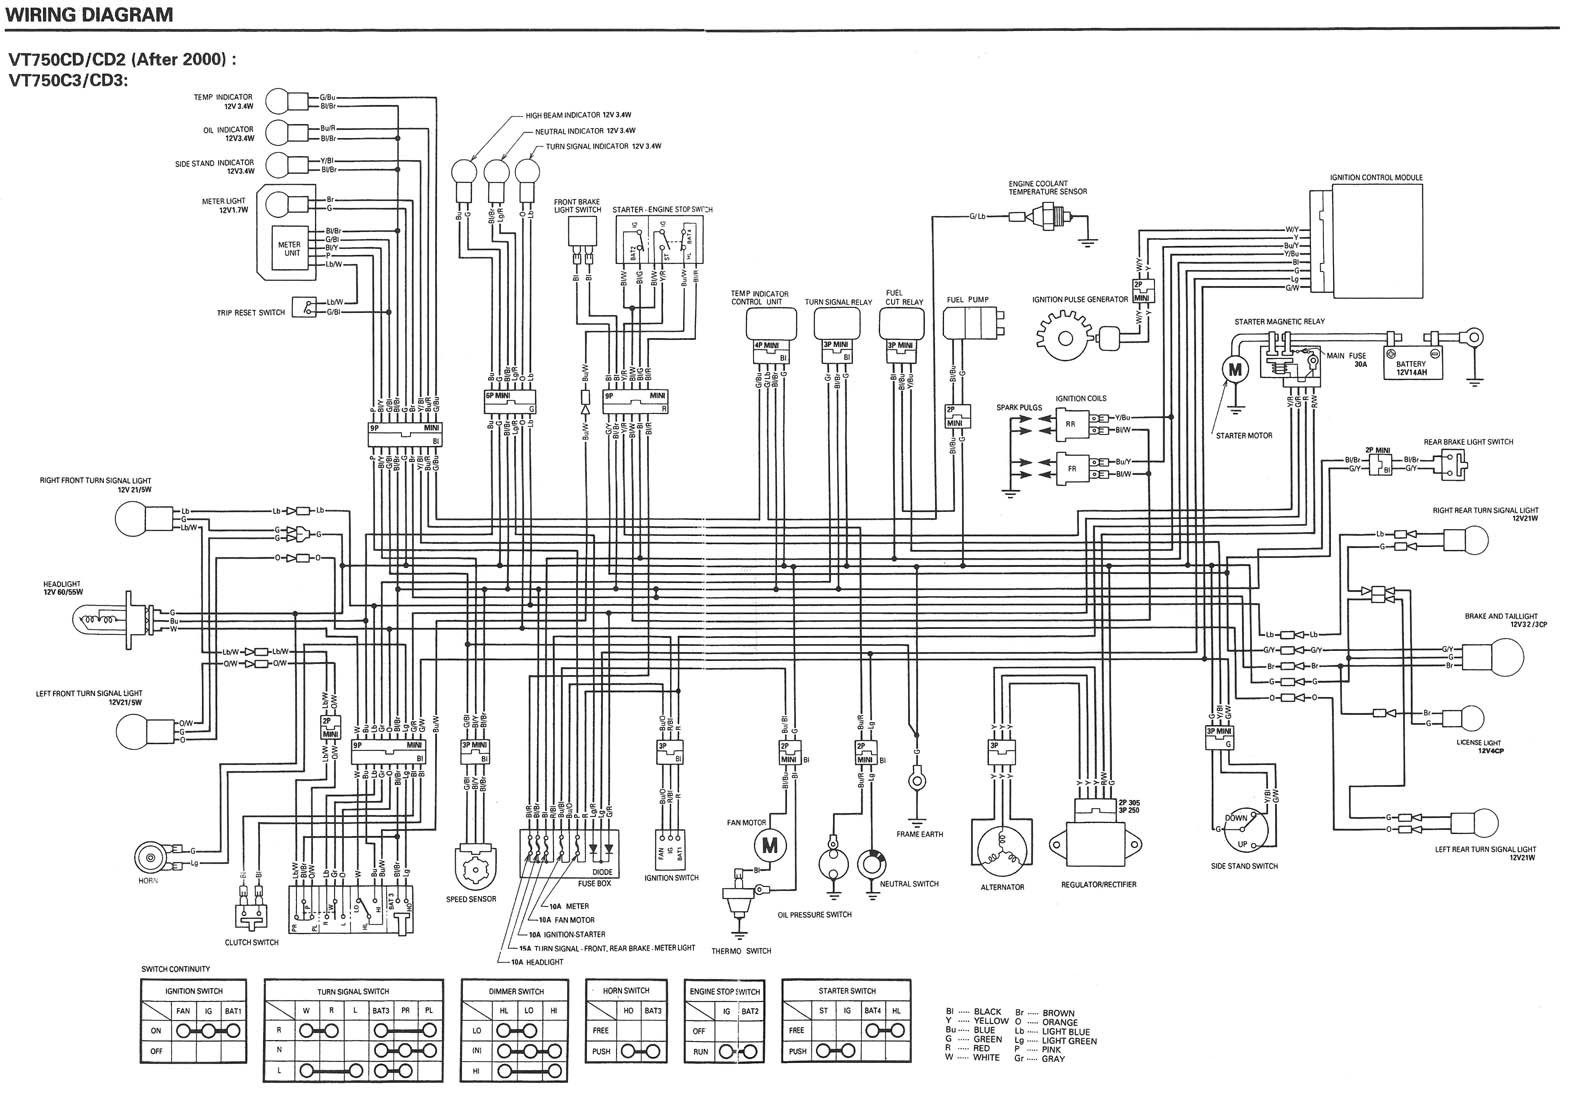 1985 Southwind Wiring Diagram | Wiring Diagram on fleetwood fiesta wiring diagram, fleetwood discovery wiring diagram, fleetwood providence wiring diagram, fleetwood prowler wiring diagram, fleetwood mallard wiring diagram, fleetwood tioga wiring diagram, fleetwood wilderness wiring diagram, fleetwood excursion wiring diagram, fleetwood flair wiring diagram, fleetwood storm wiring diagram, fleetwood terra wiring diagram, fleetwood southwind brake system,